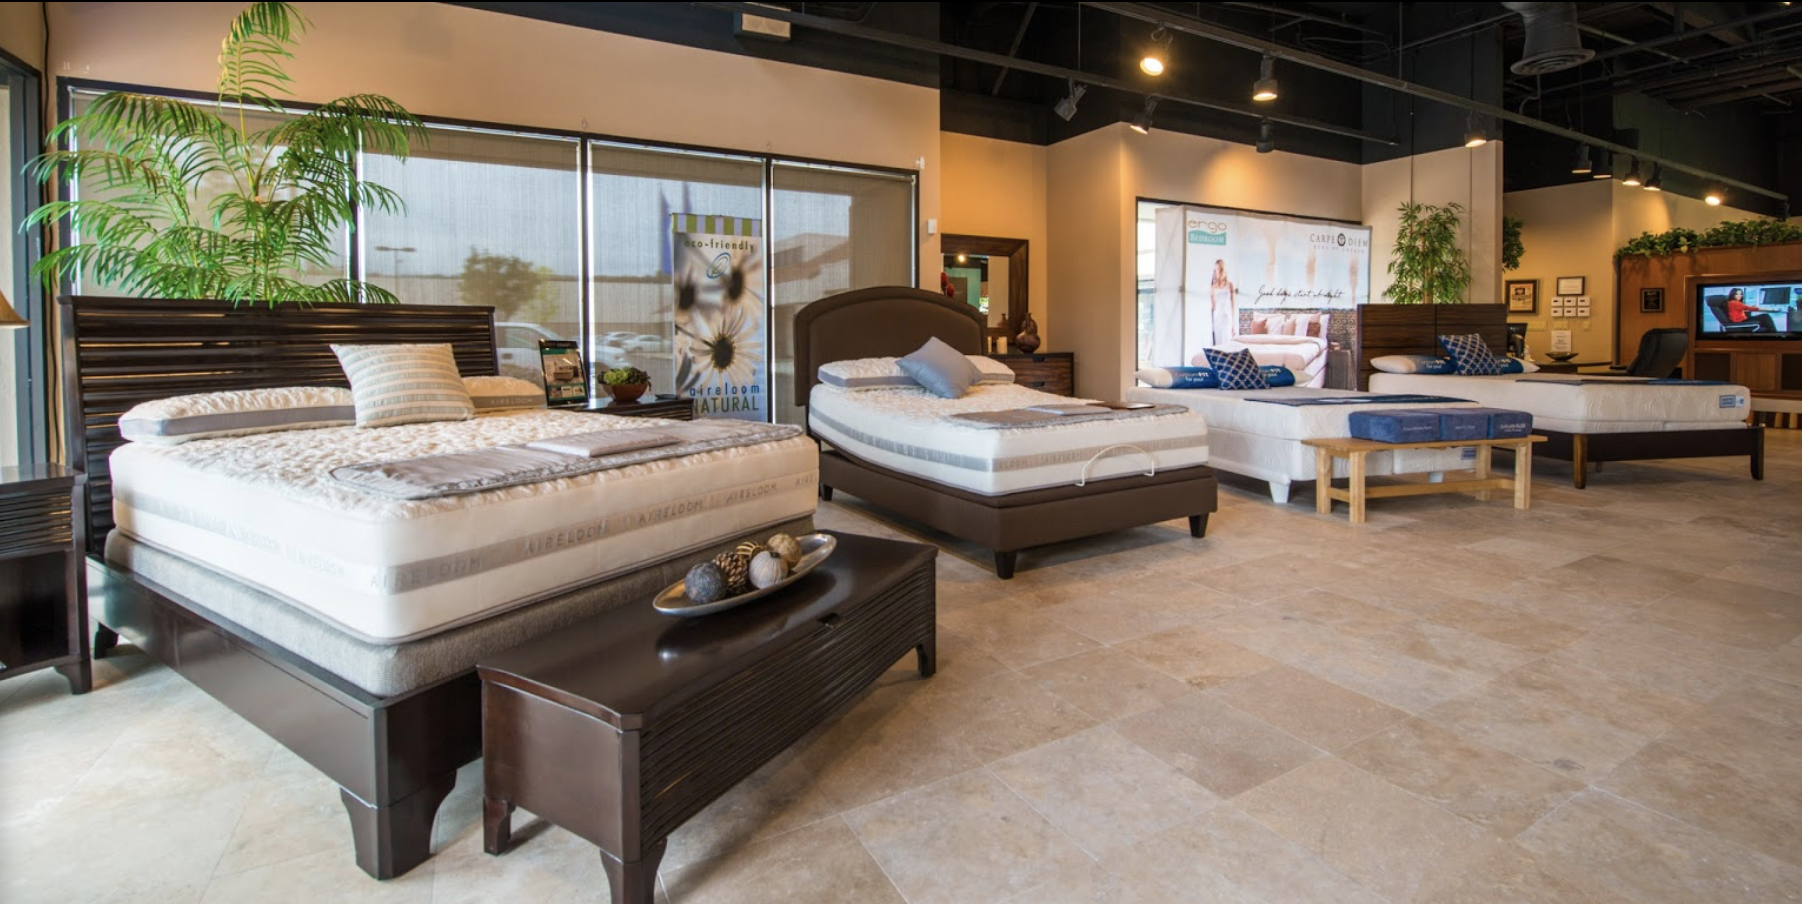 Ergo Beds – Natural Talalay Latex Mattress And Latex Pillow Store In Laguna Niguel California